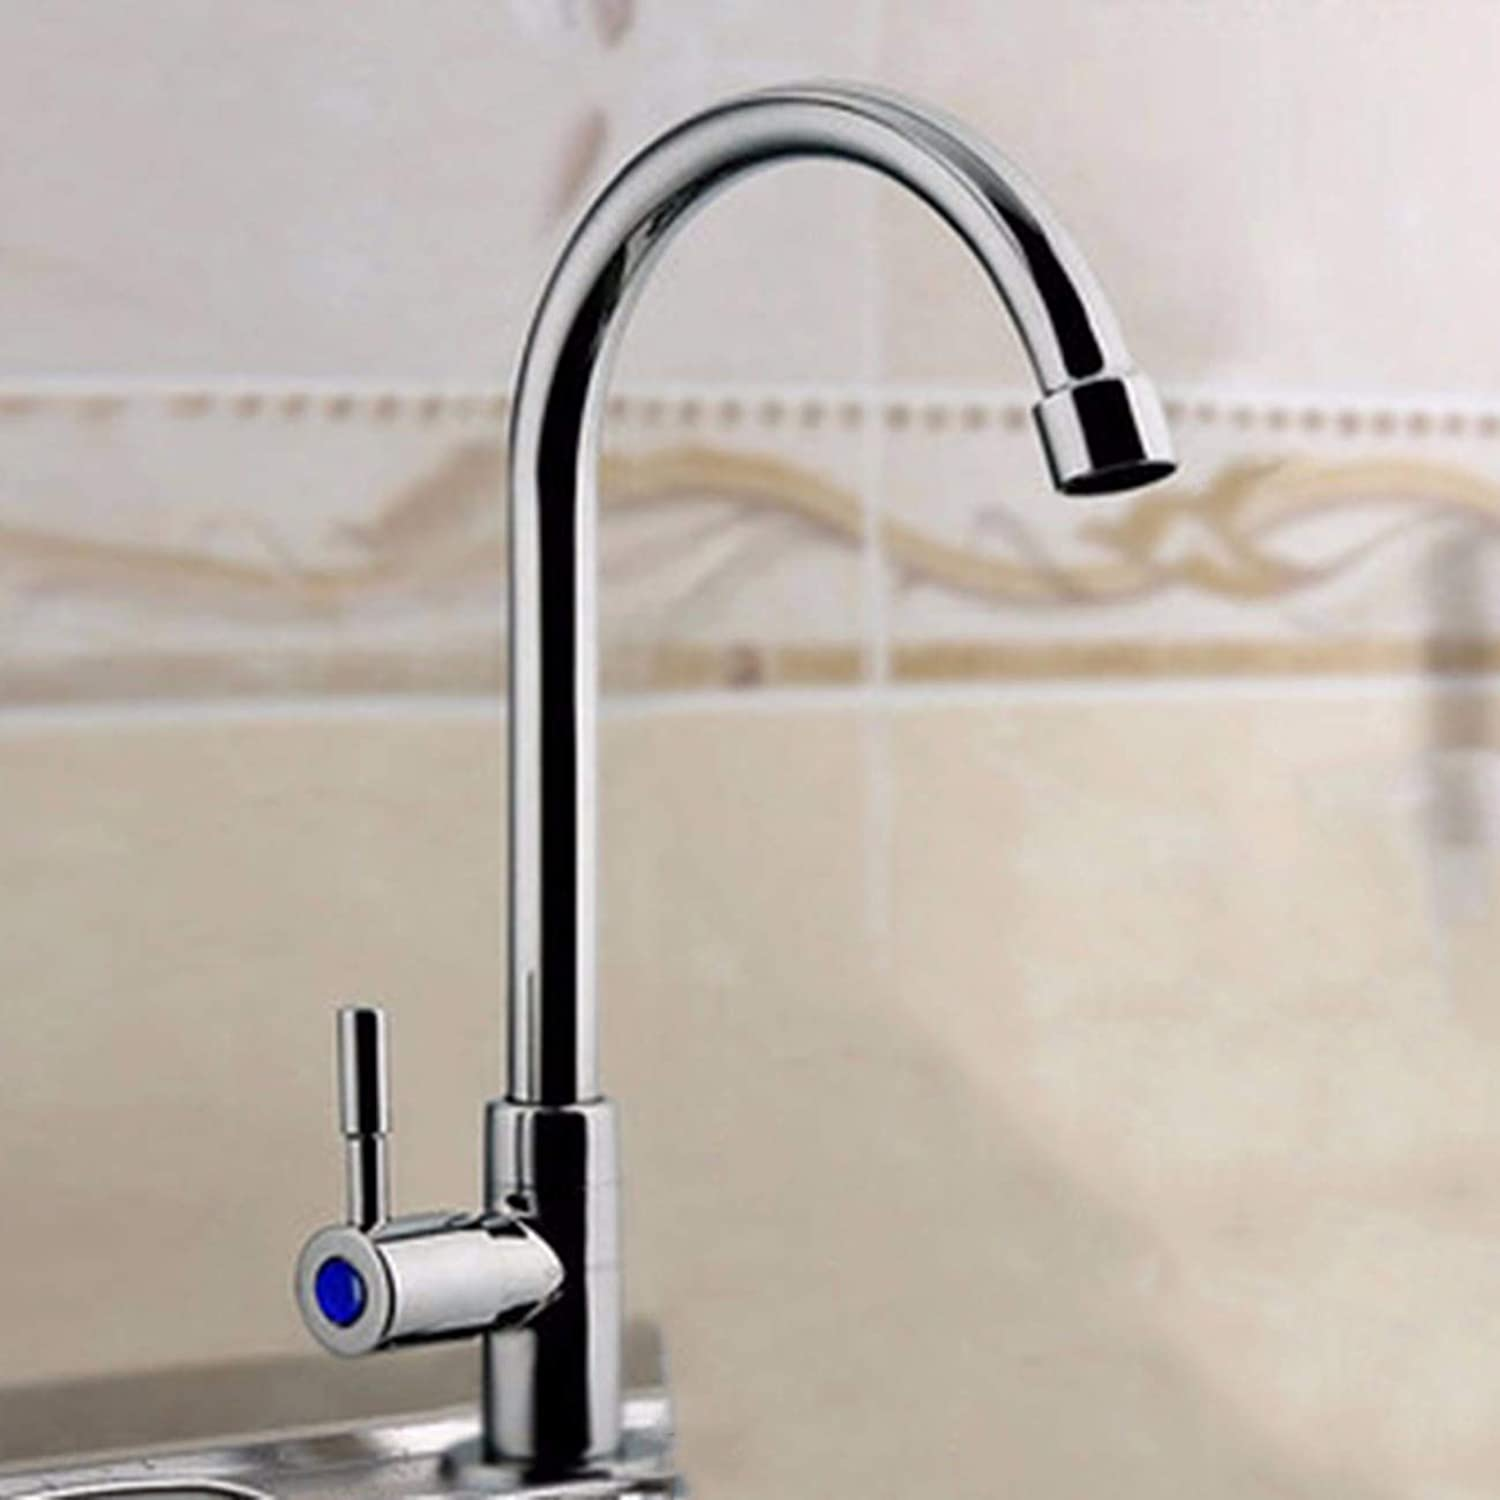 Kitchen tap Kitchen hot and cold faucet all copper sink sink redatable dishwashing laundry sink sink washbasin household,G